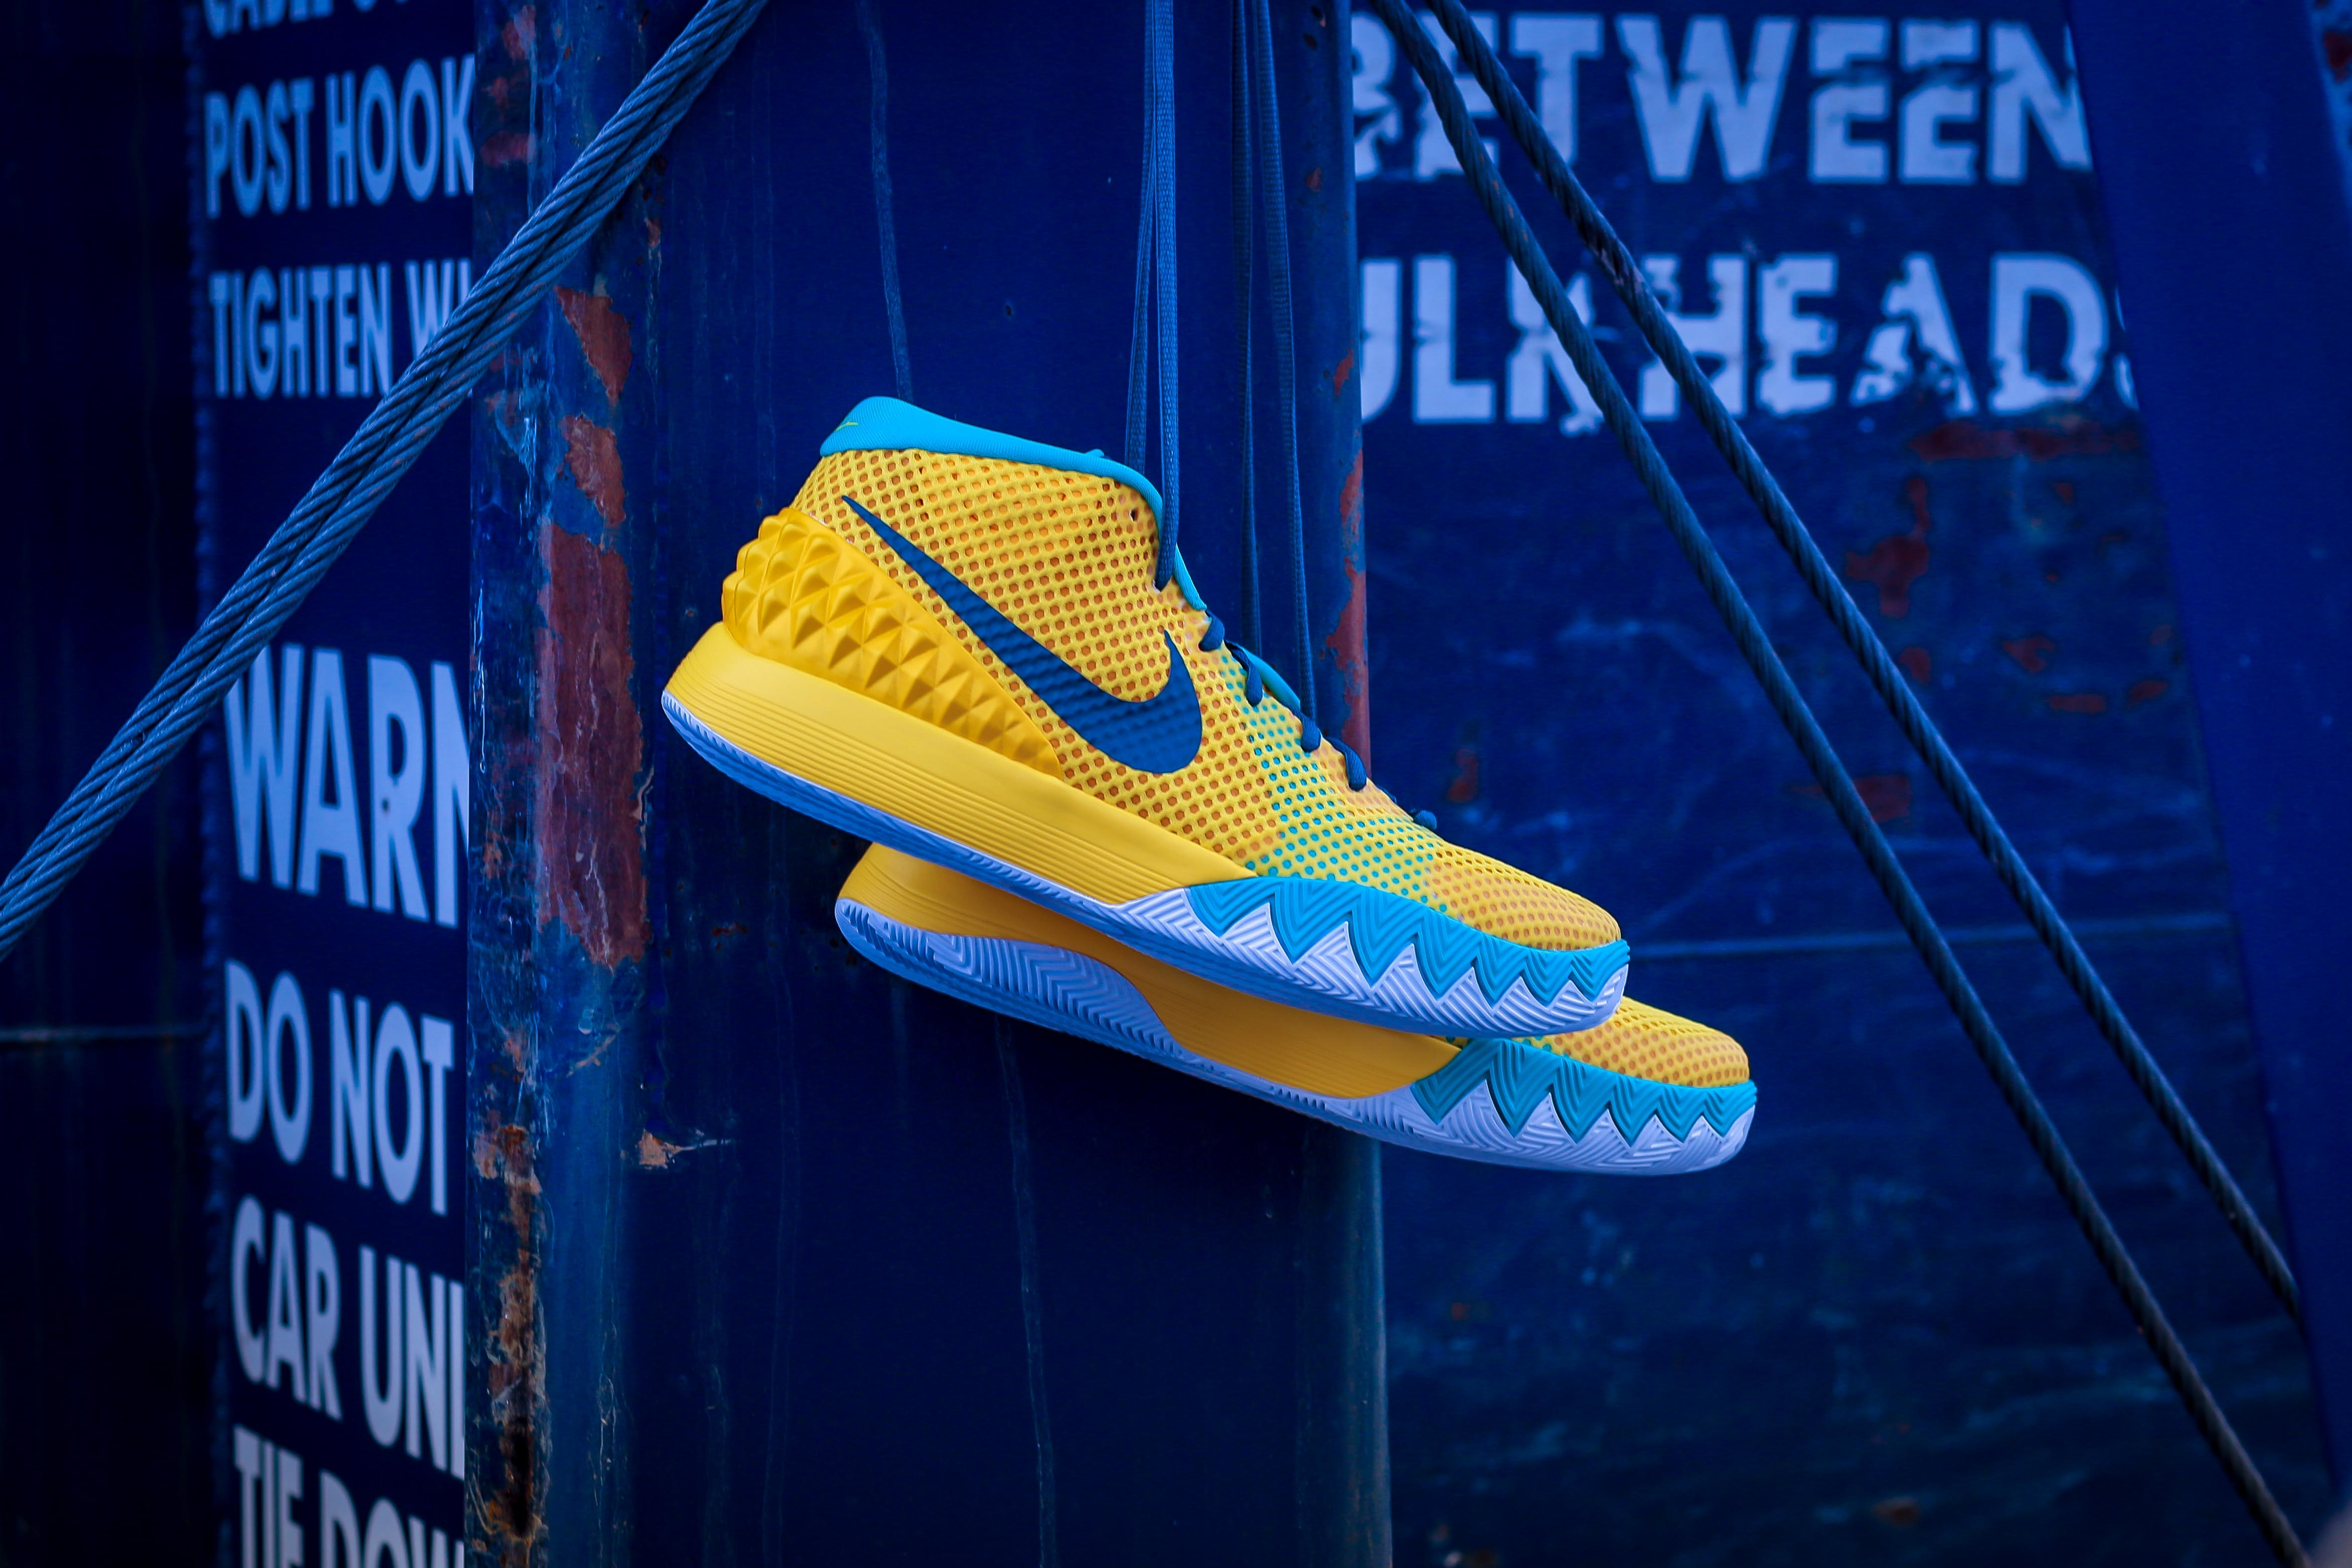 tour yellow kyrie 1 unboxing amp review - 640×640